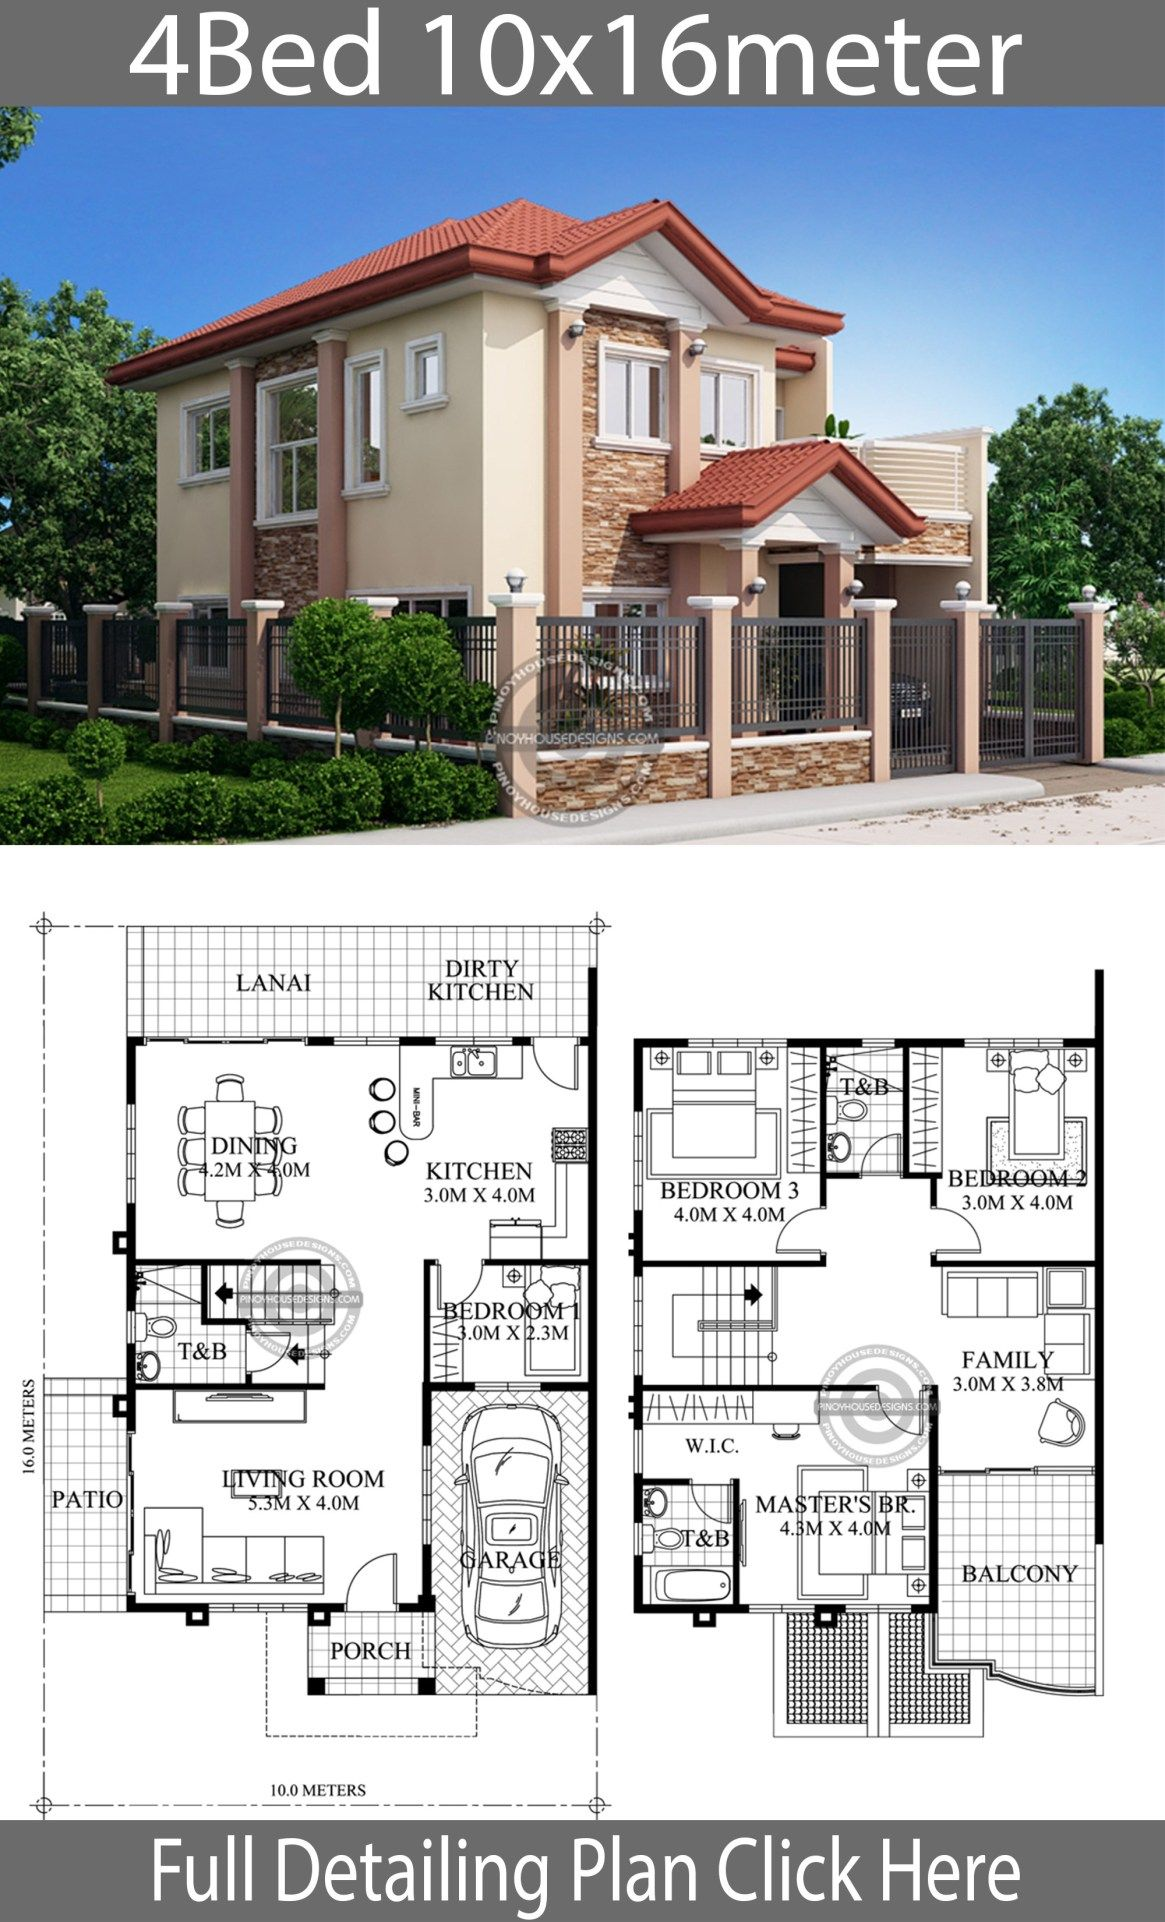 Home Design 10x16m 4 Bedrooms Home Design With Plansearch 2 Storey House Design Architectural House Plans Bungalow House Design